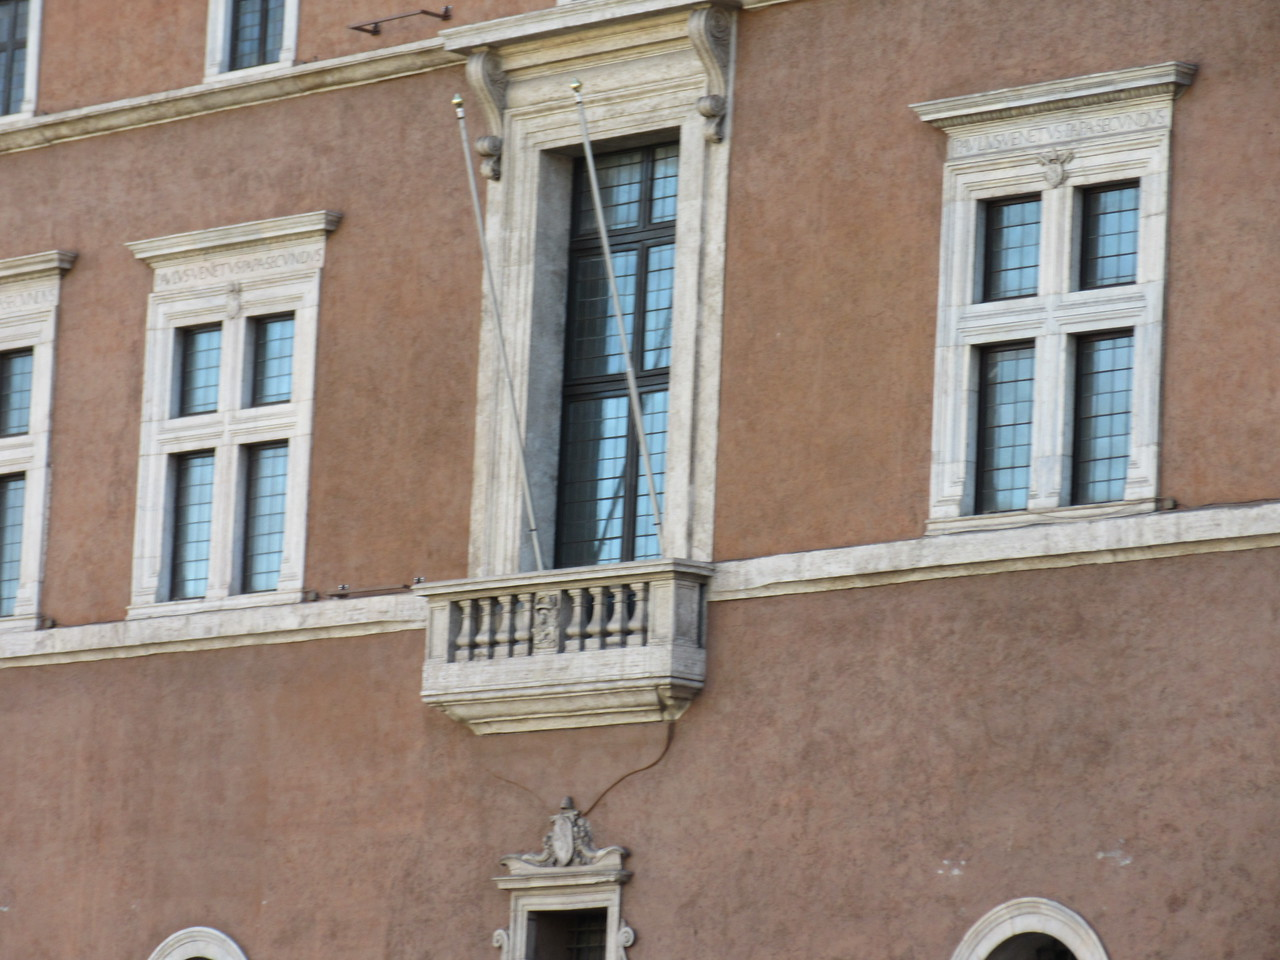 Balcony used often by Benito Mussolini for speeches